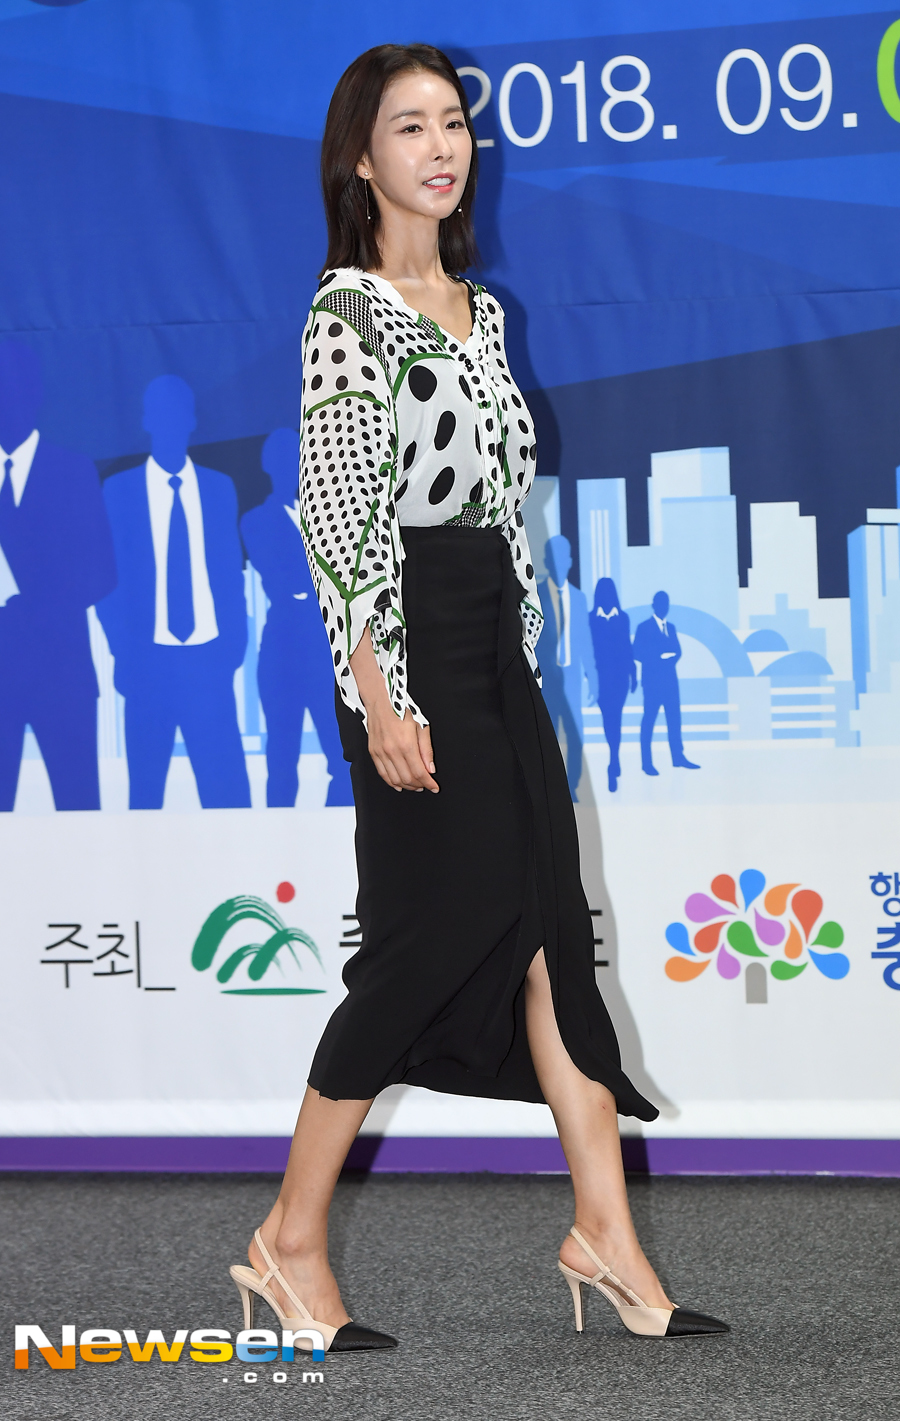 <p>2018 Chungcheong region The commission ceremony commissioned by the small and medium venture company exposition public relations ambassador was held at the COEX Convention & Exhibition Center in Gangnam-gu, Seoul on the morning of August 24.</p><p>Han Eun-jung this day is entering.</p><p>Han Eun-jung performing as a passionate girl with goose bumps in the drama If it seems to be said to you now is not only acting, but also acting as a living together, law of jungle, running man , Life Bar, Real Male and Female 2 and so on through numerous entertainment programs.</p>